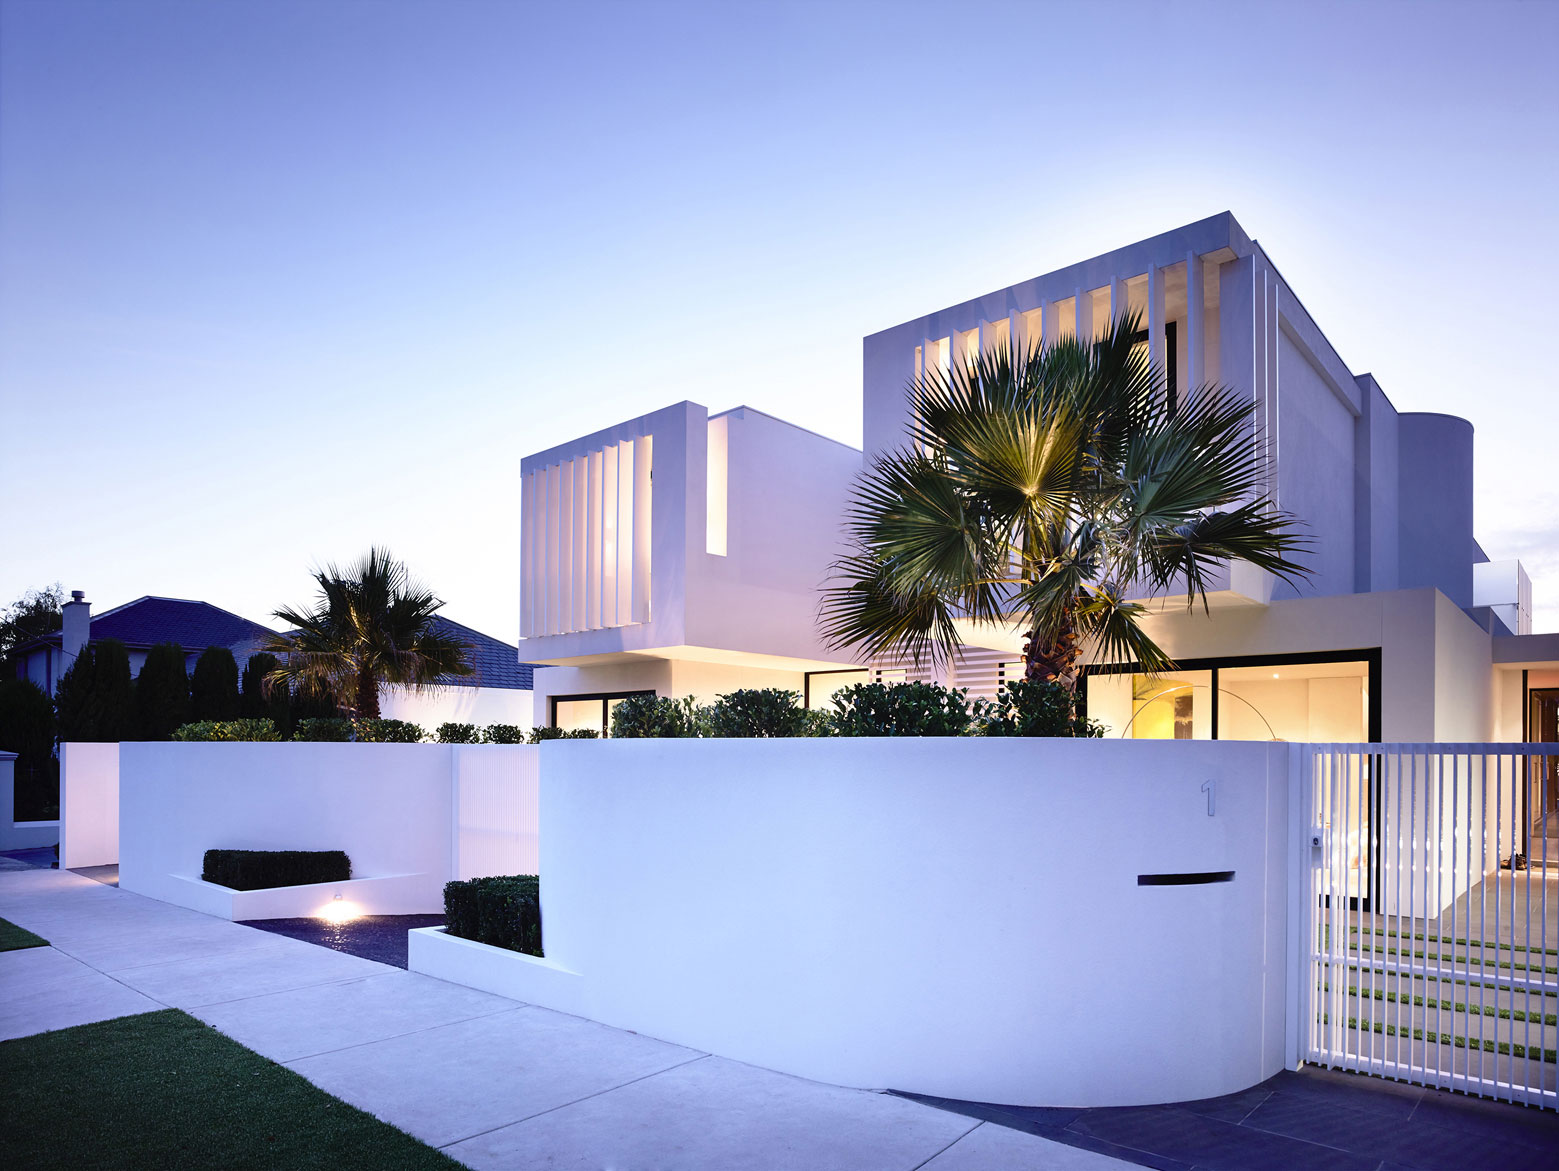 Charming minimalist townhouses in brighton australia for Townhouse architecture designs